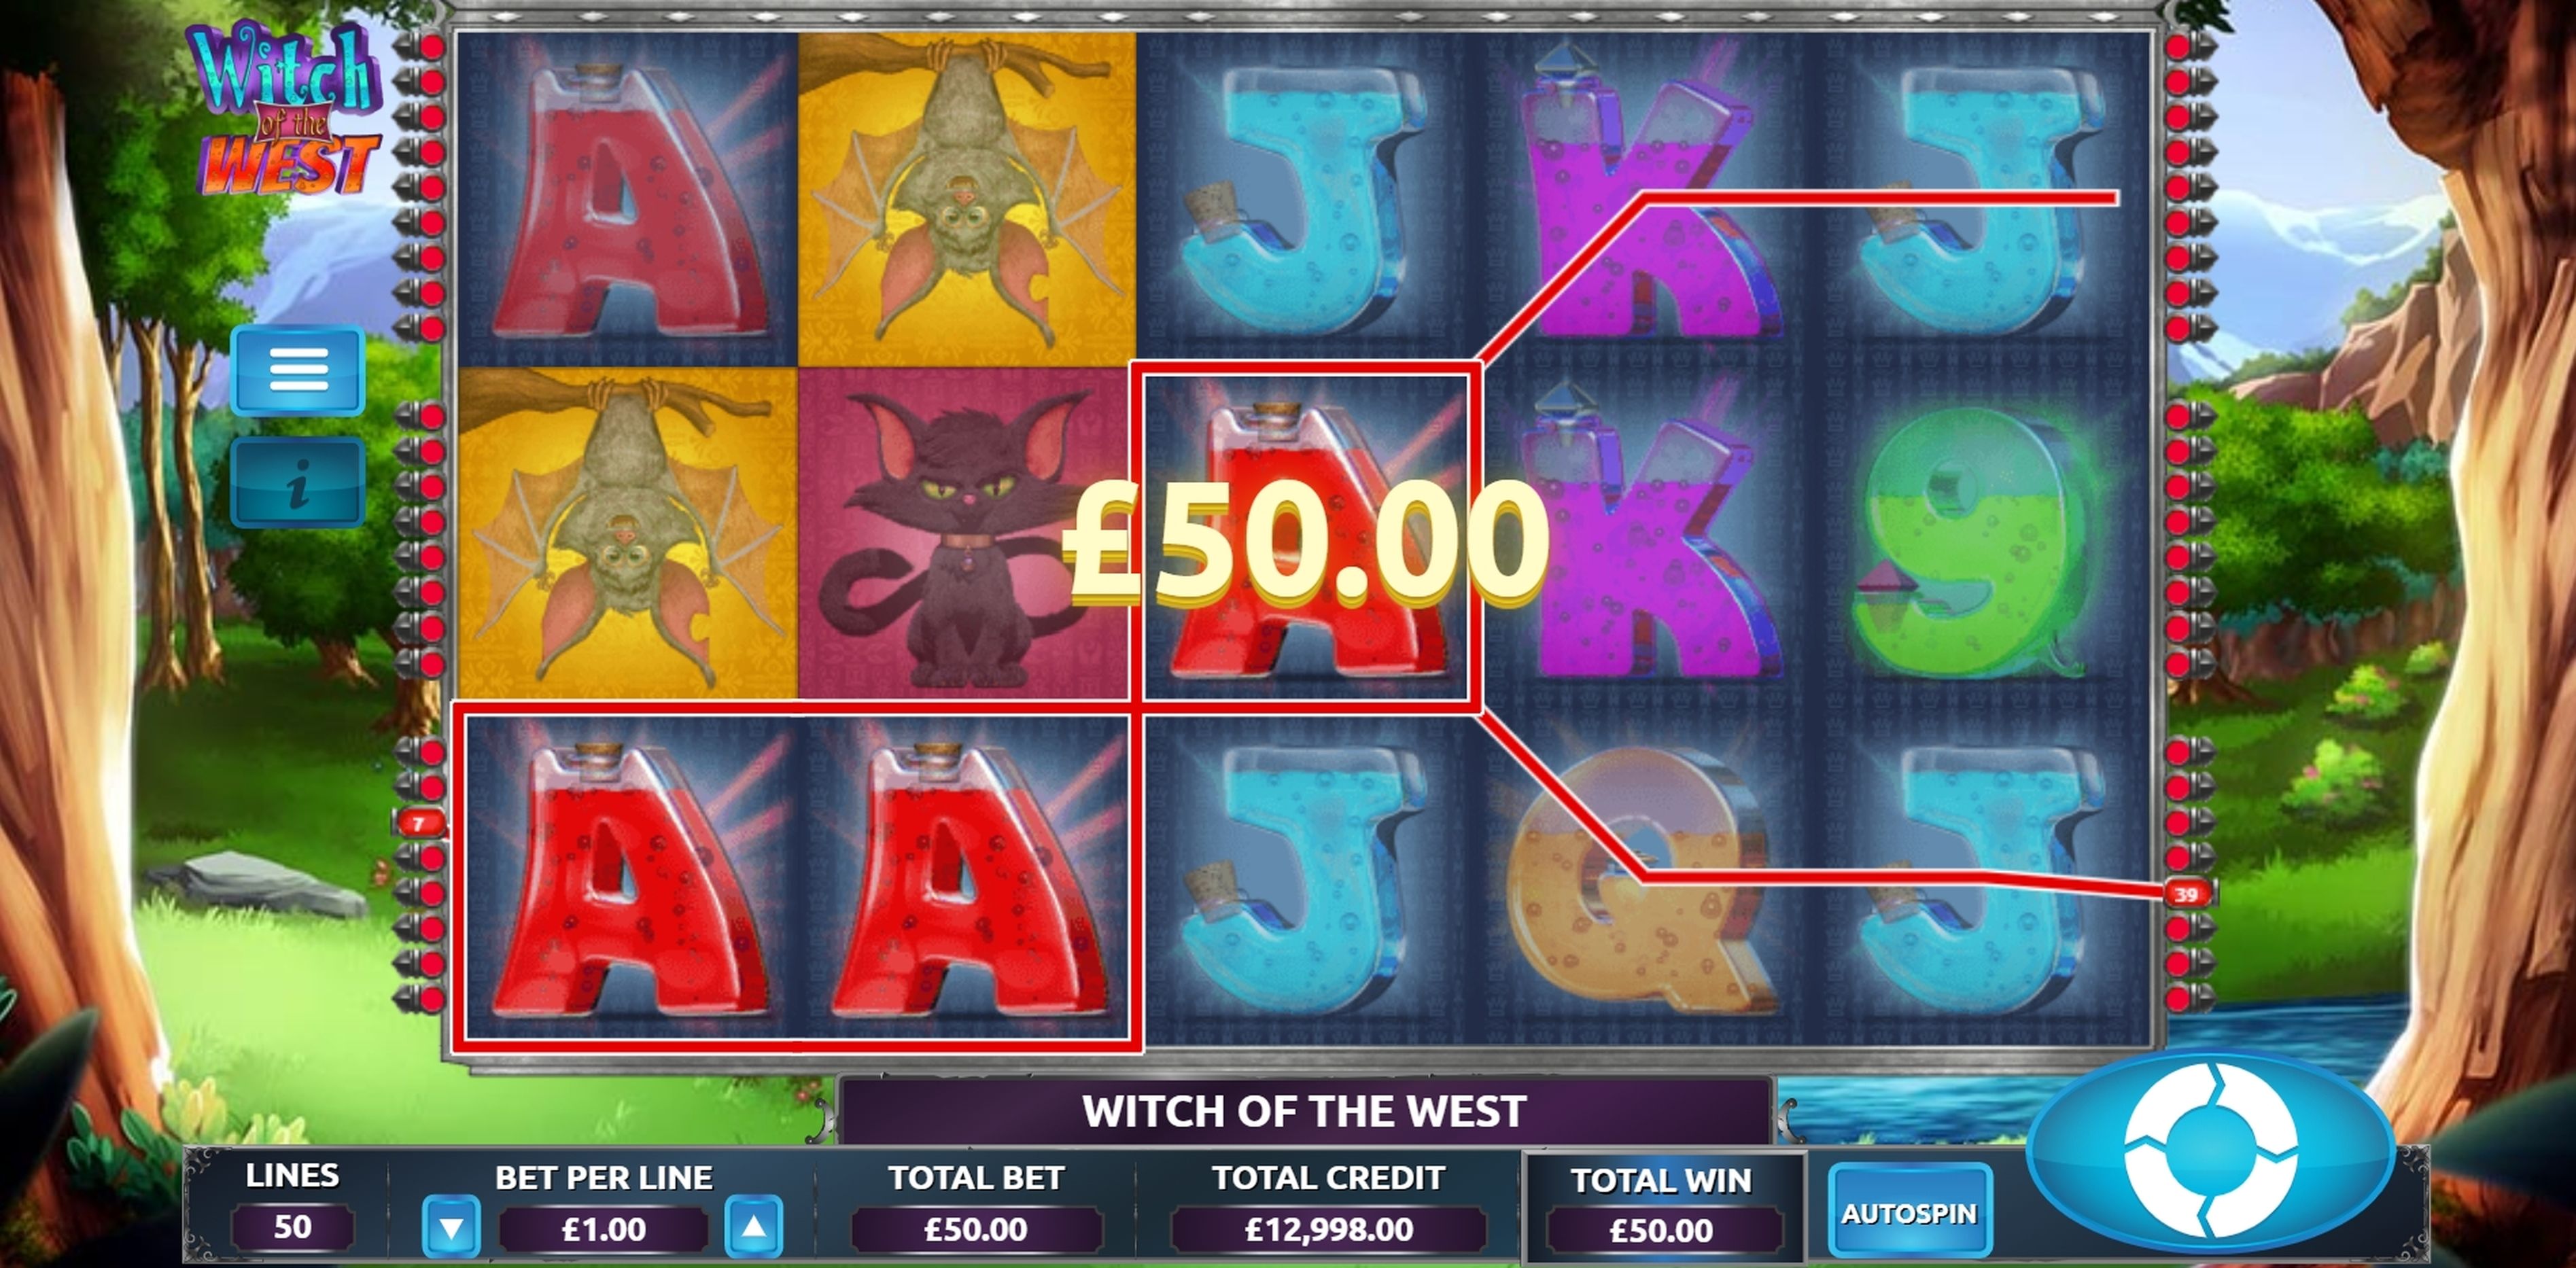 Win Money in Witch of the West Free Slot Game by The Games Company